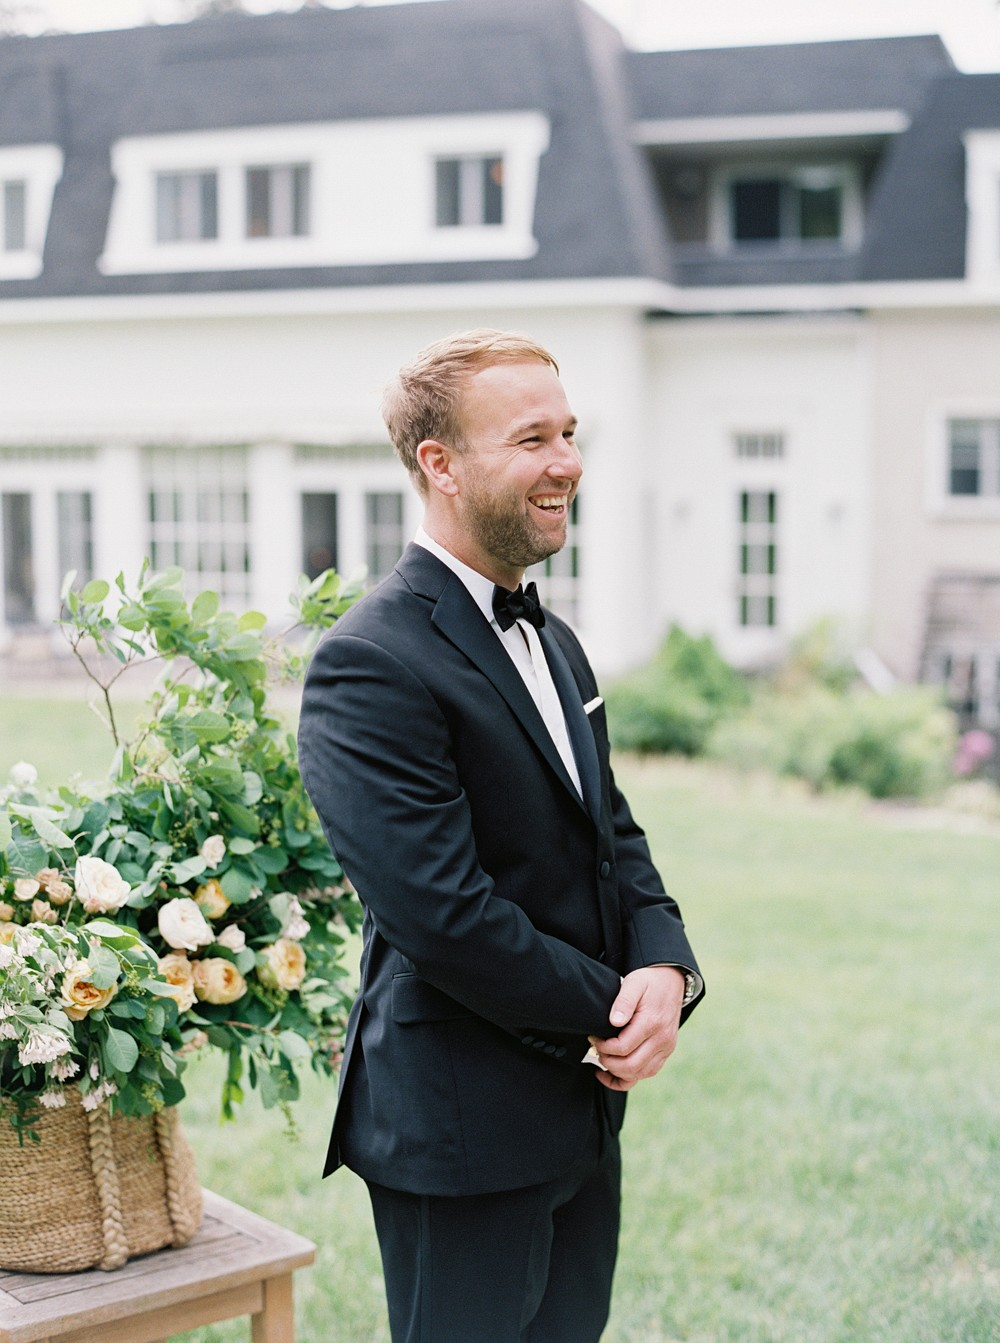 Groom at altar   Sophisticated Real Wedding in Ontario by When He Found Her on Wedding Sparrow